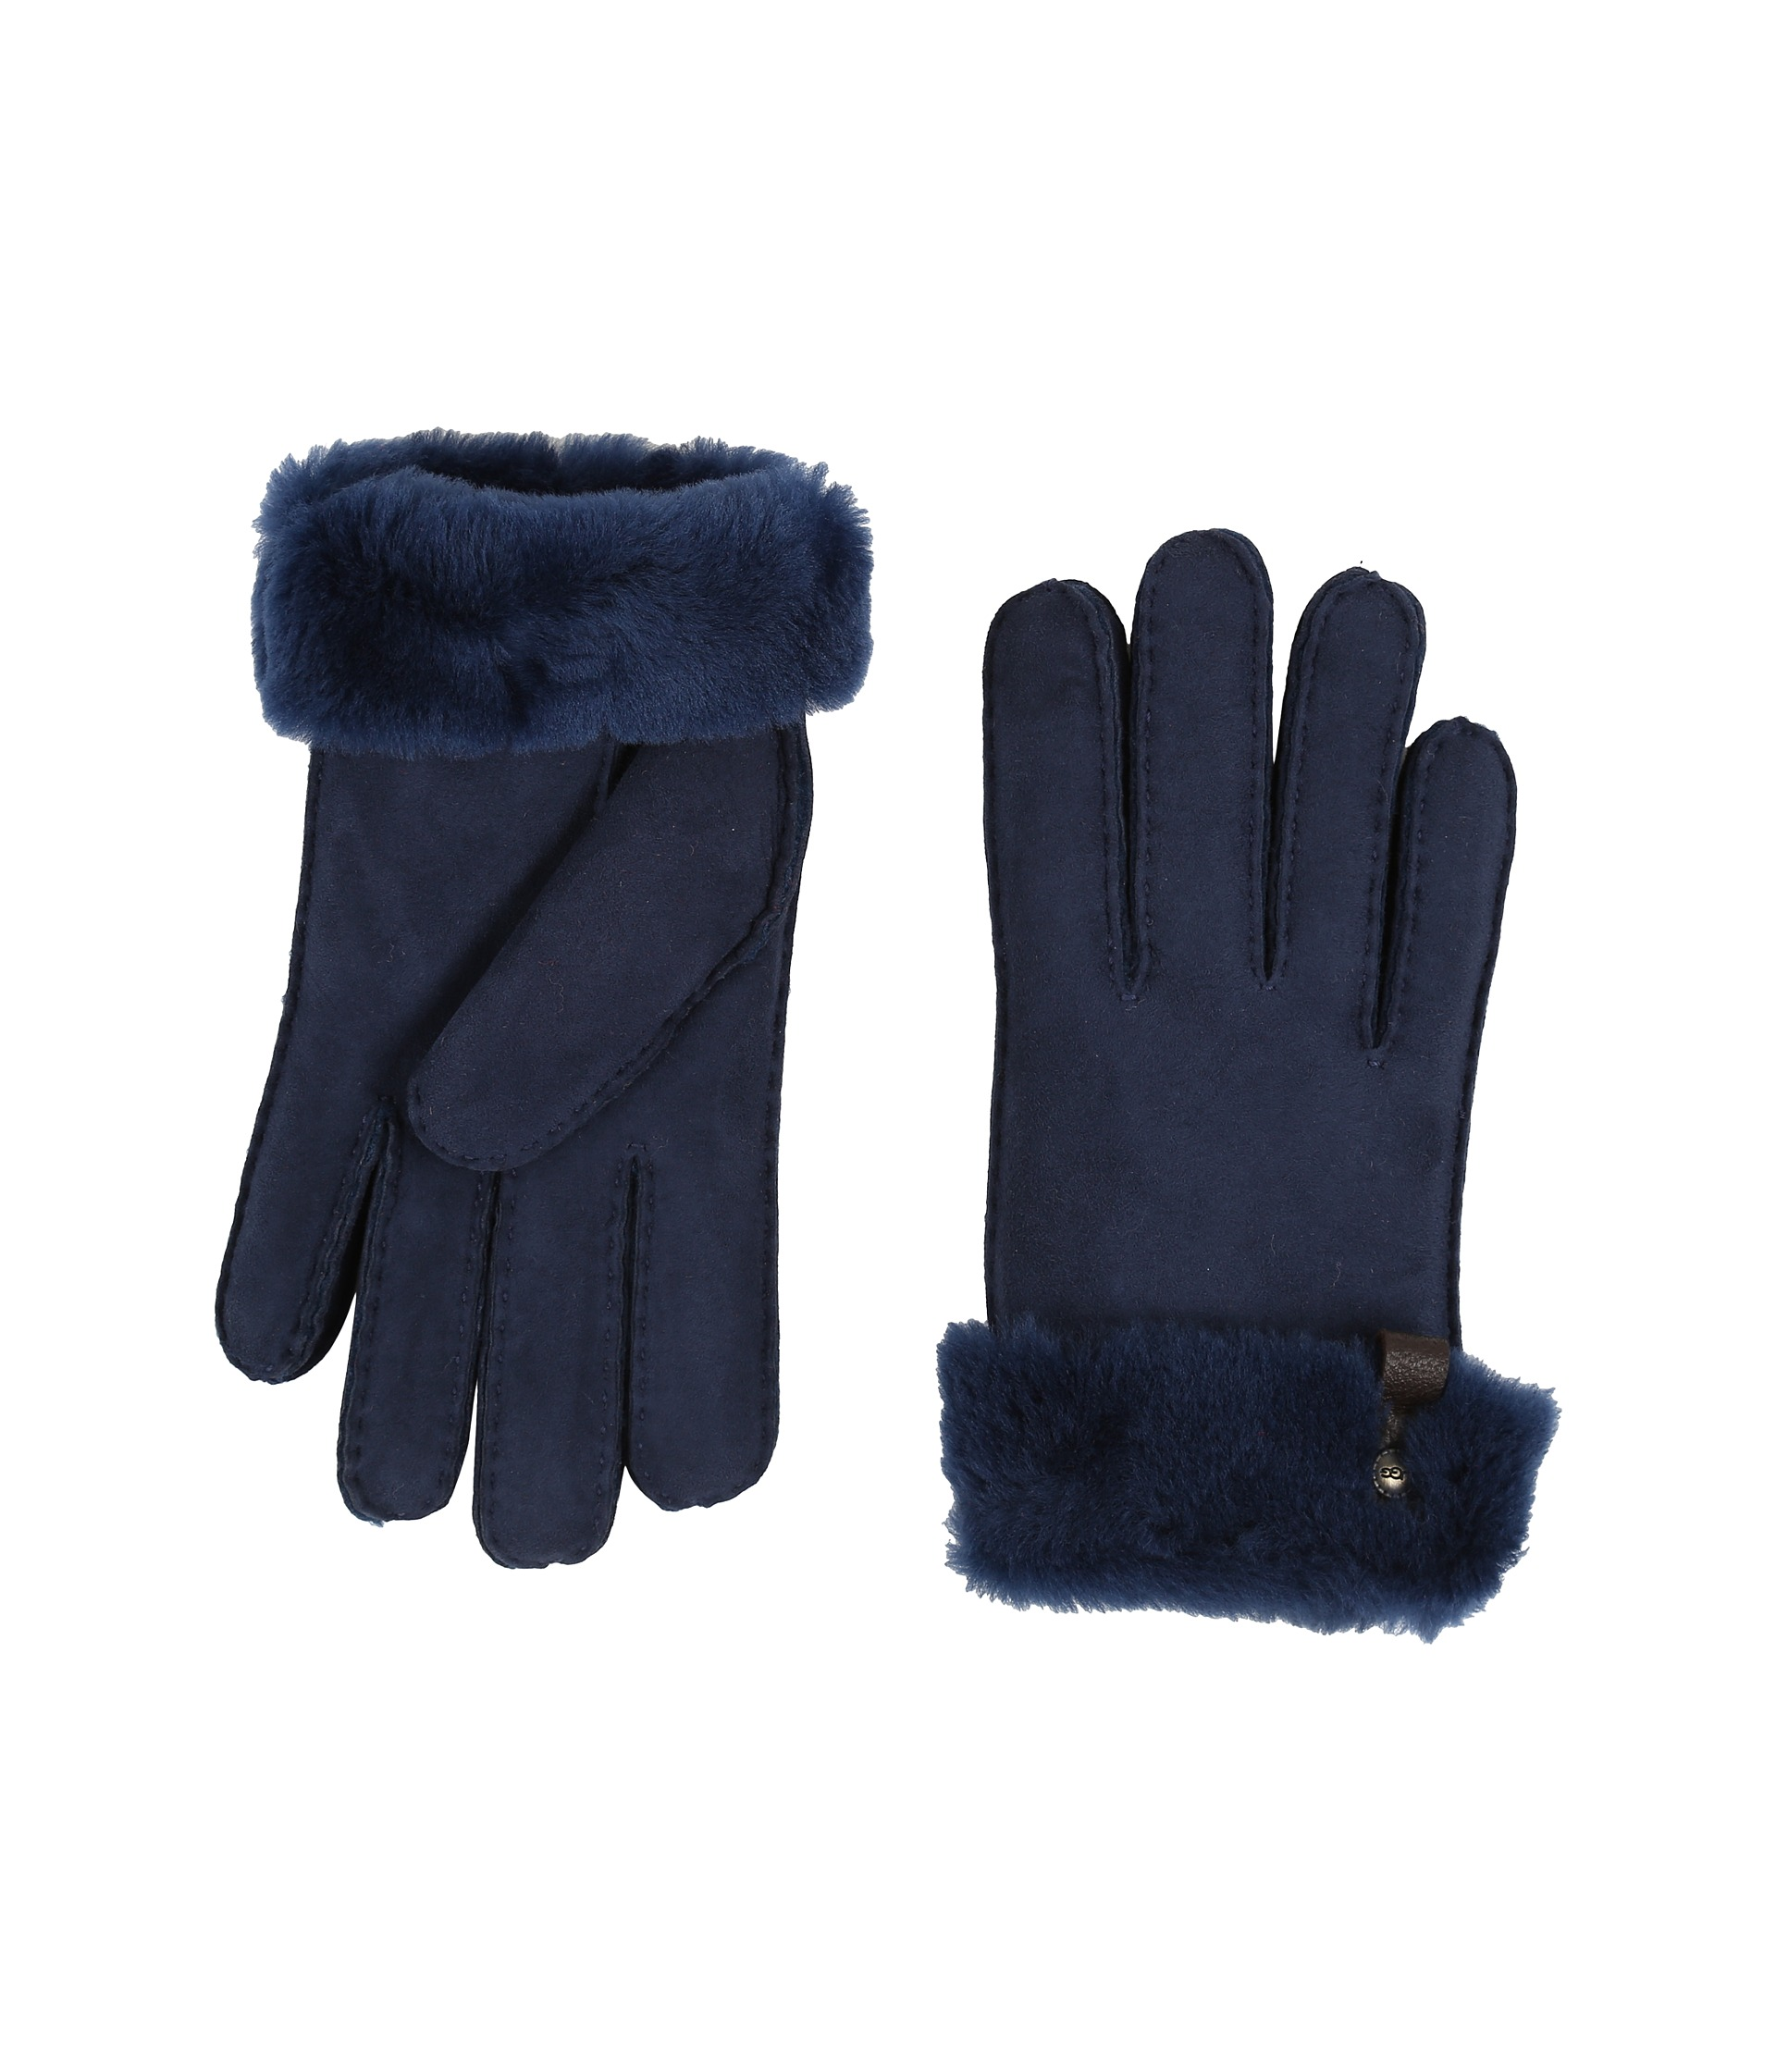 d916f4f98da Ugg Smart Gloves Review - cheap watches mgc-gas.com